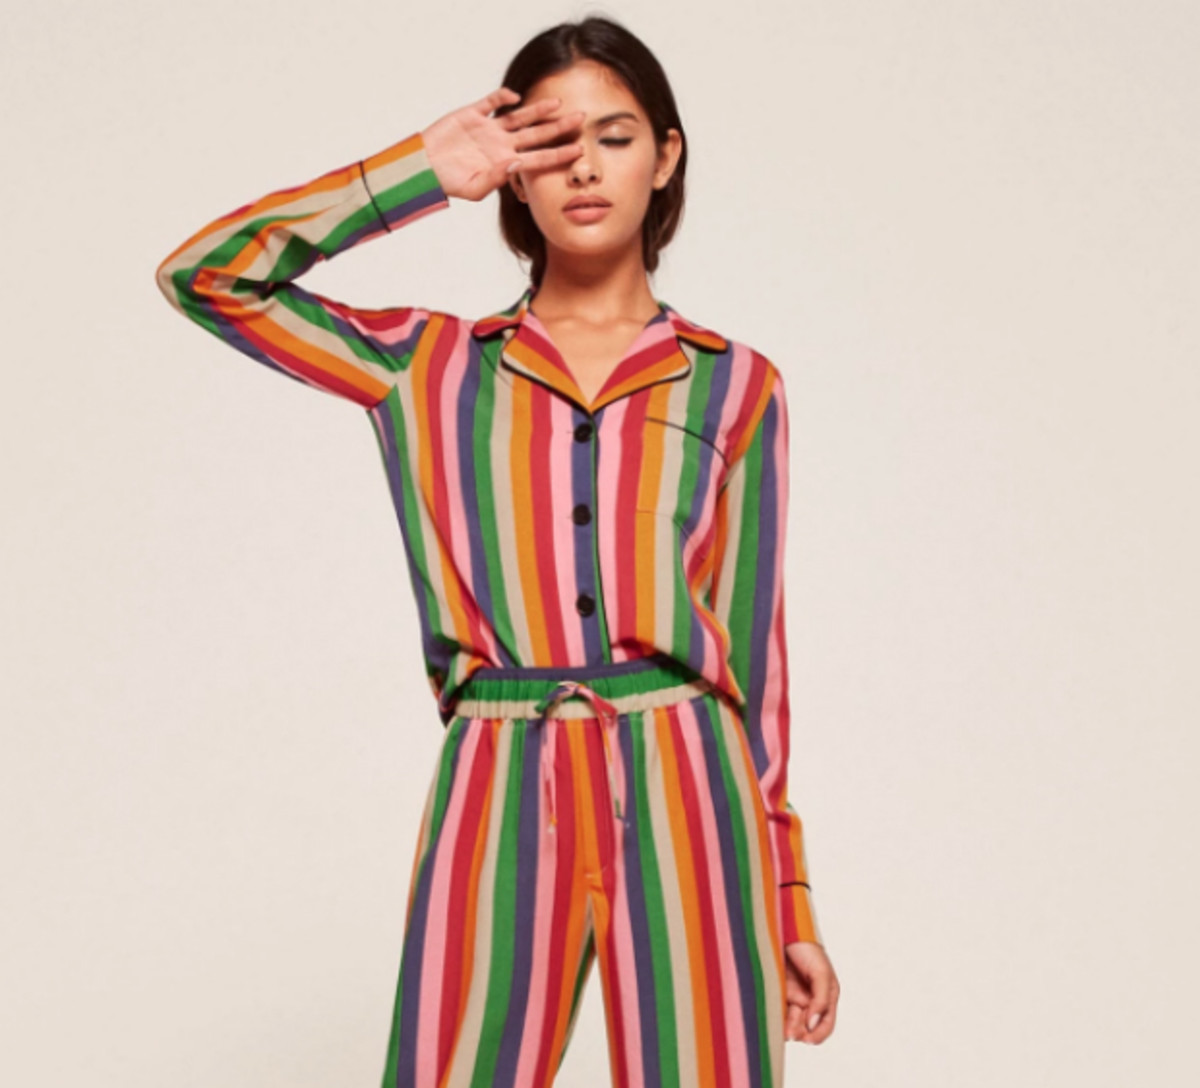 Reformation pajama set in rainbow stripe, $128, available at Reformation.